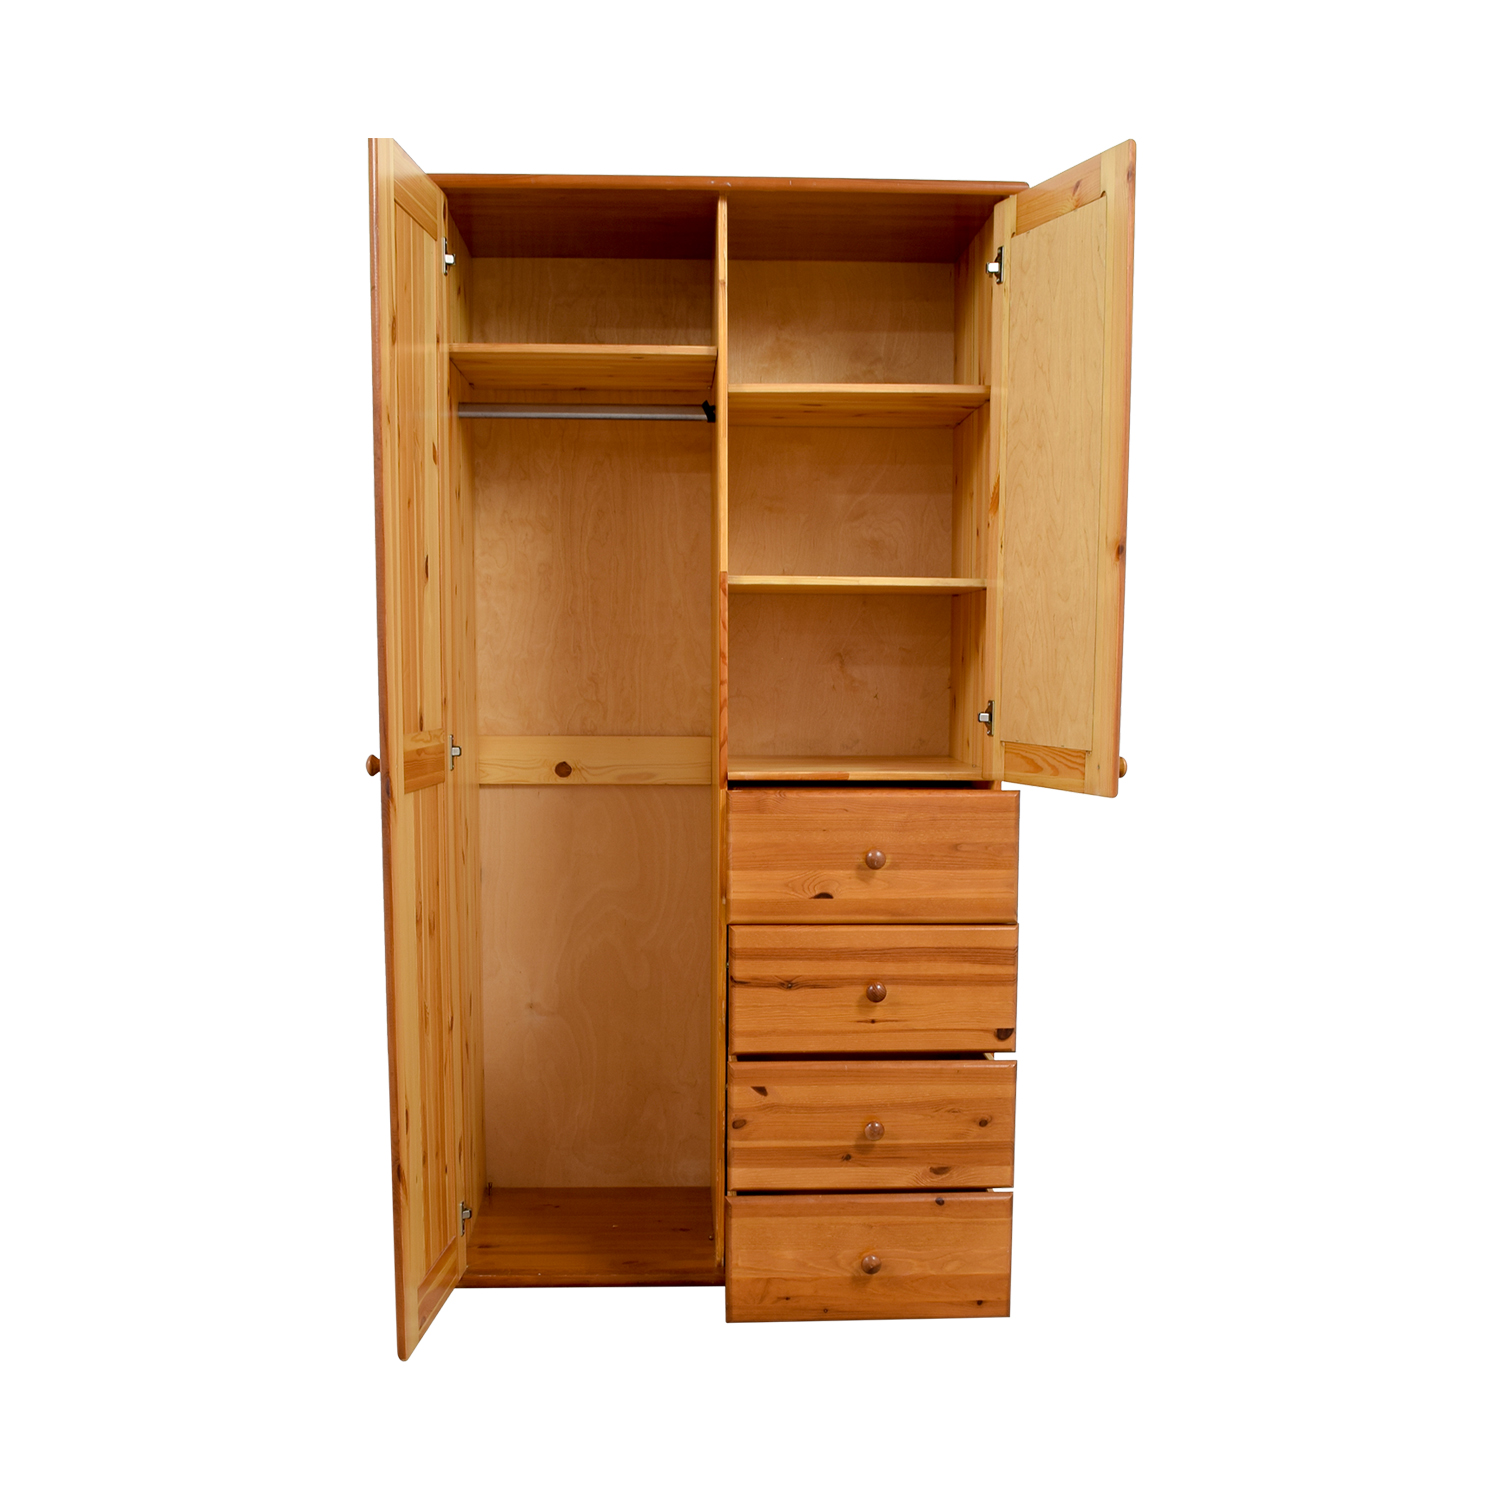 69 off wood armoire with rack drawers and shelves storage rh kaiyo com